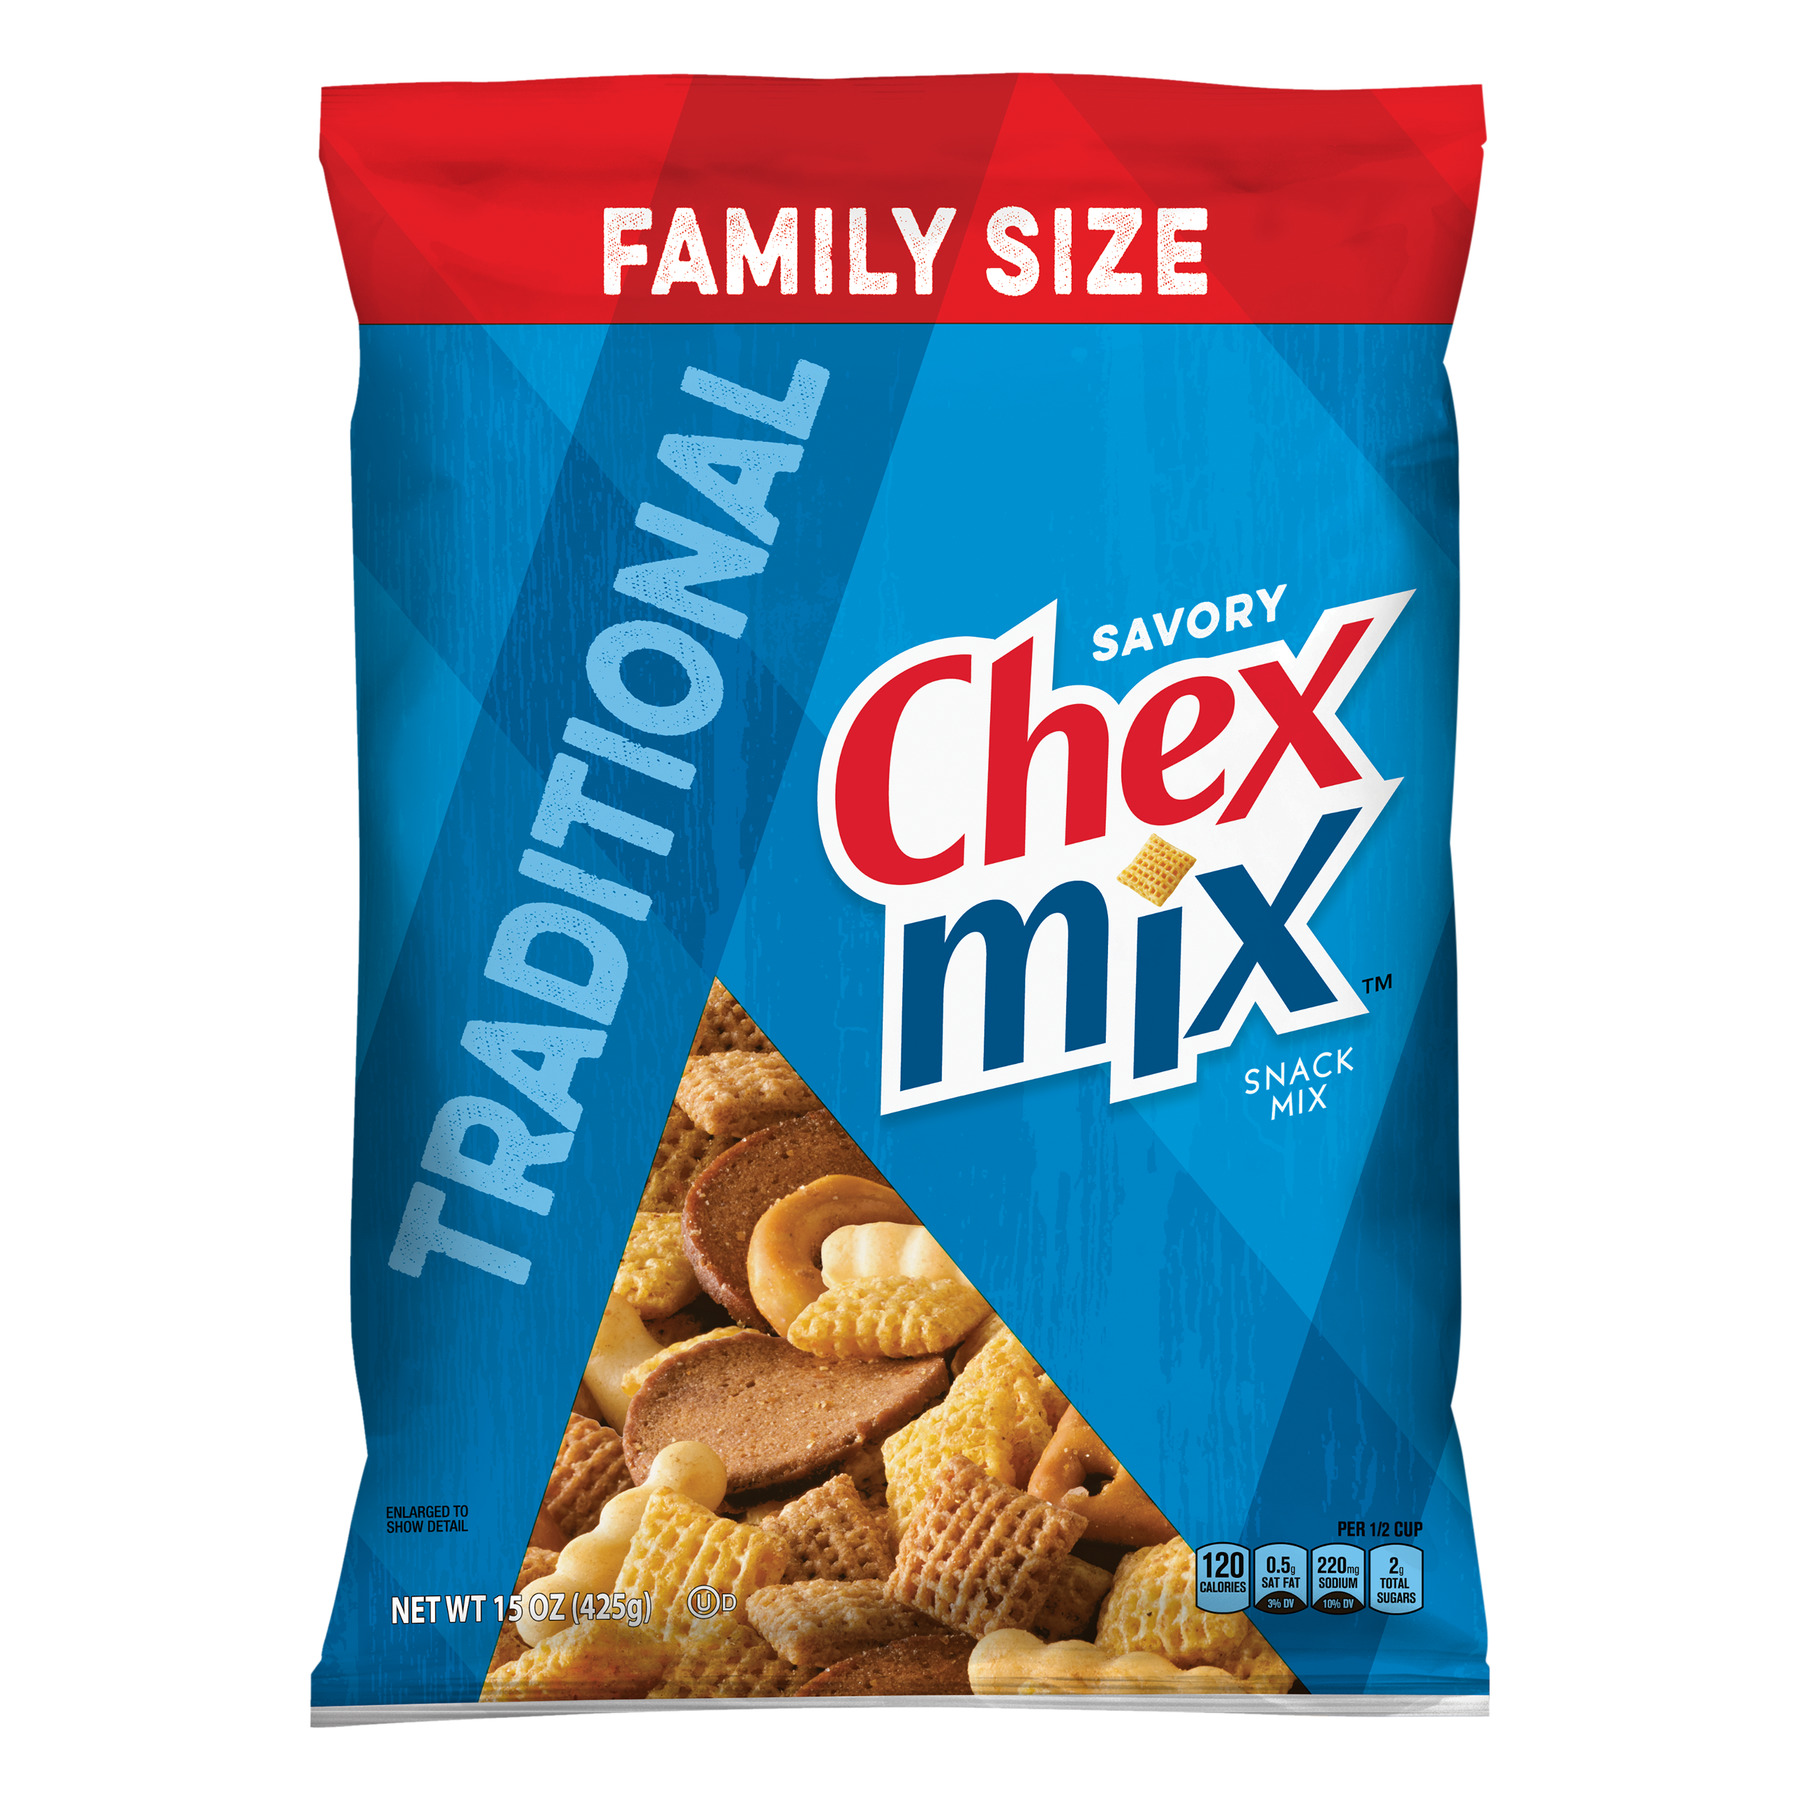 Chex Mix Traditional Savory Snack Mix, 15 oz